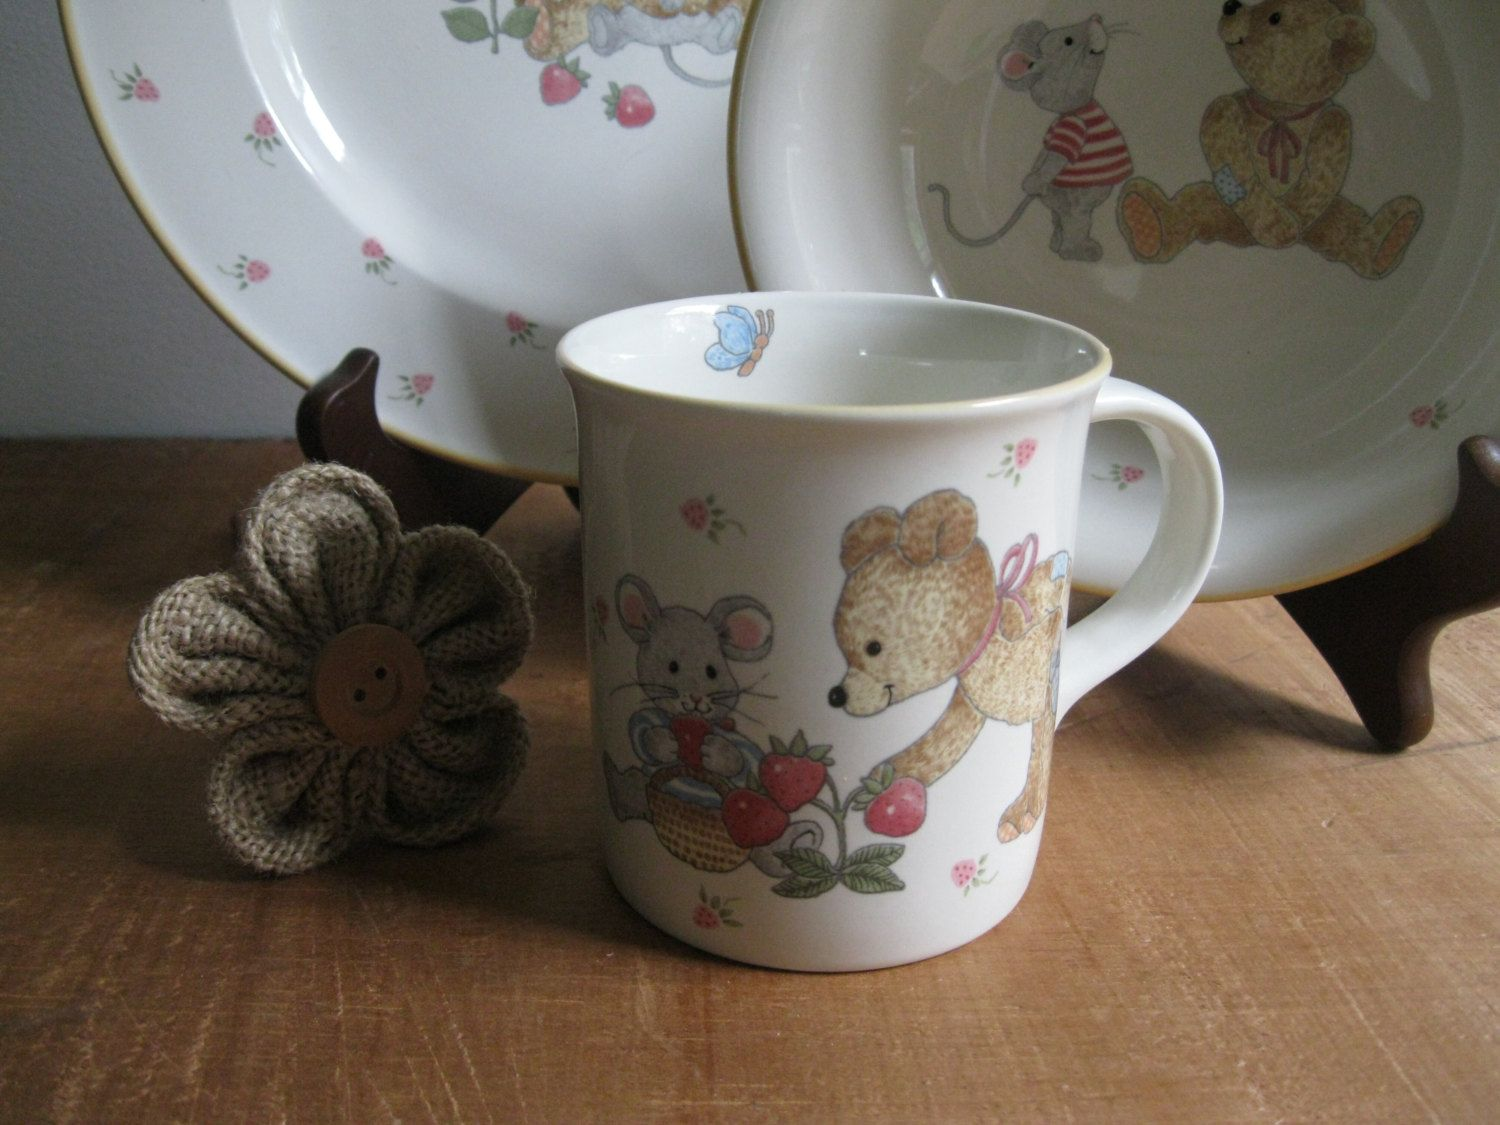 New Item Vintage Mikasateddy Bear Plate Bowl Cup Dish Set 1 Serving Malaysia Dish Sets Plates Etsy